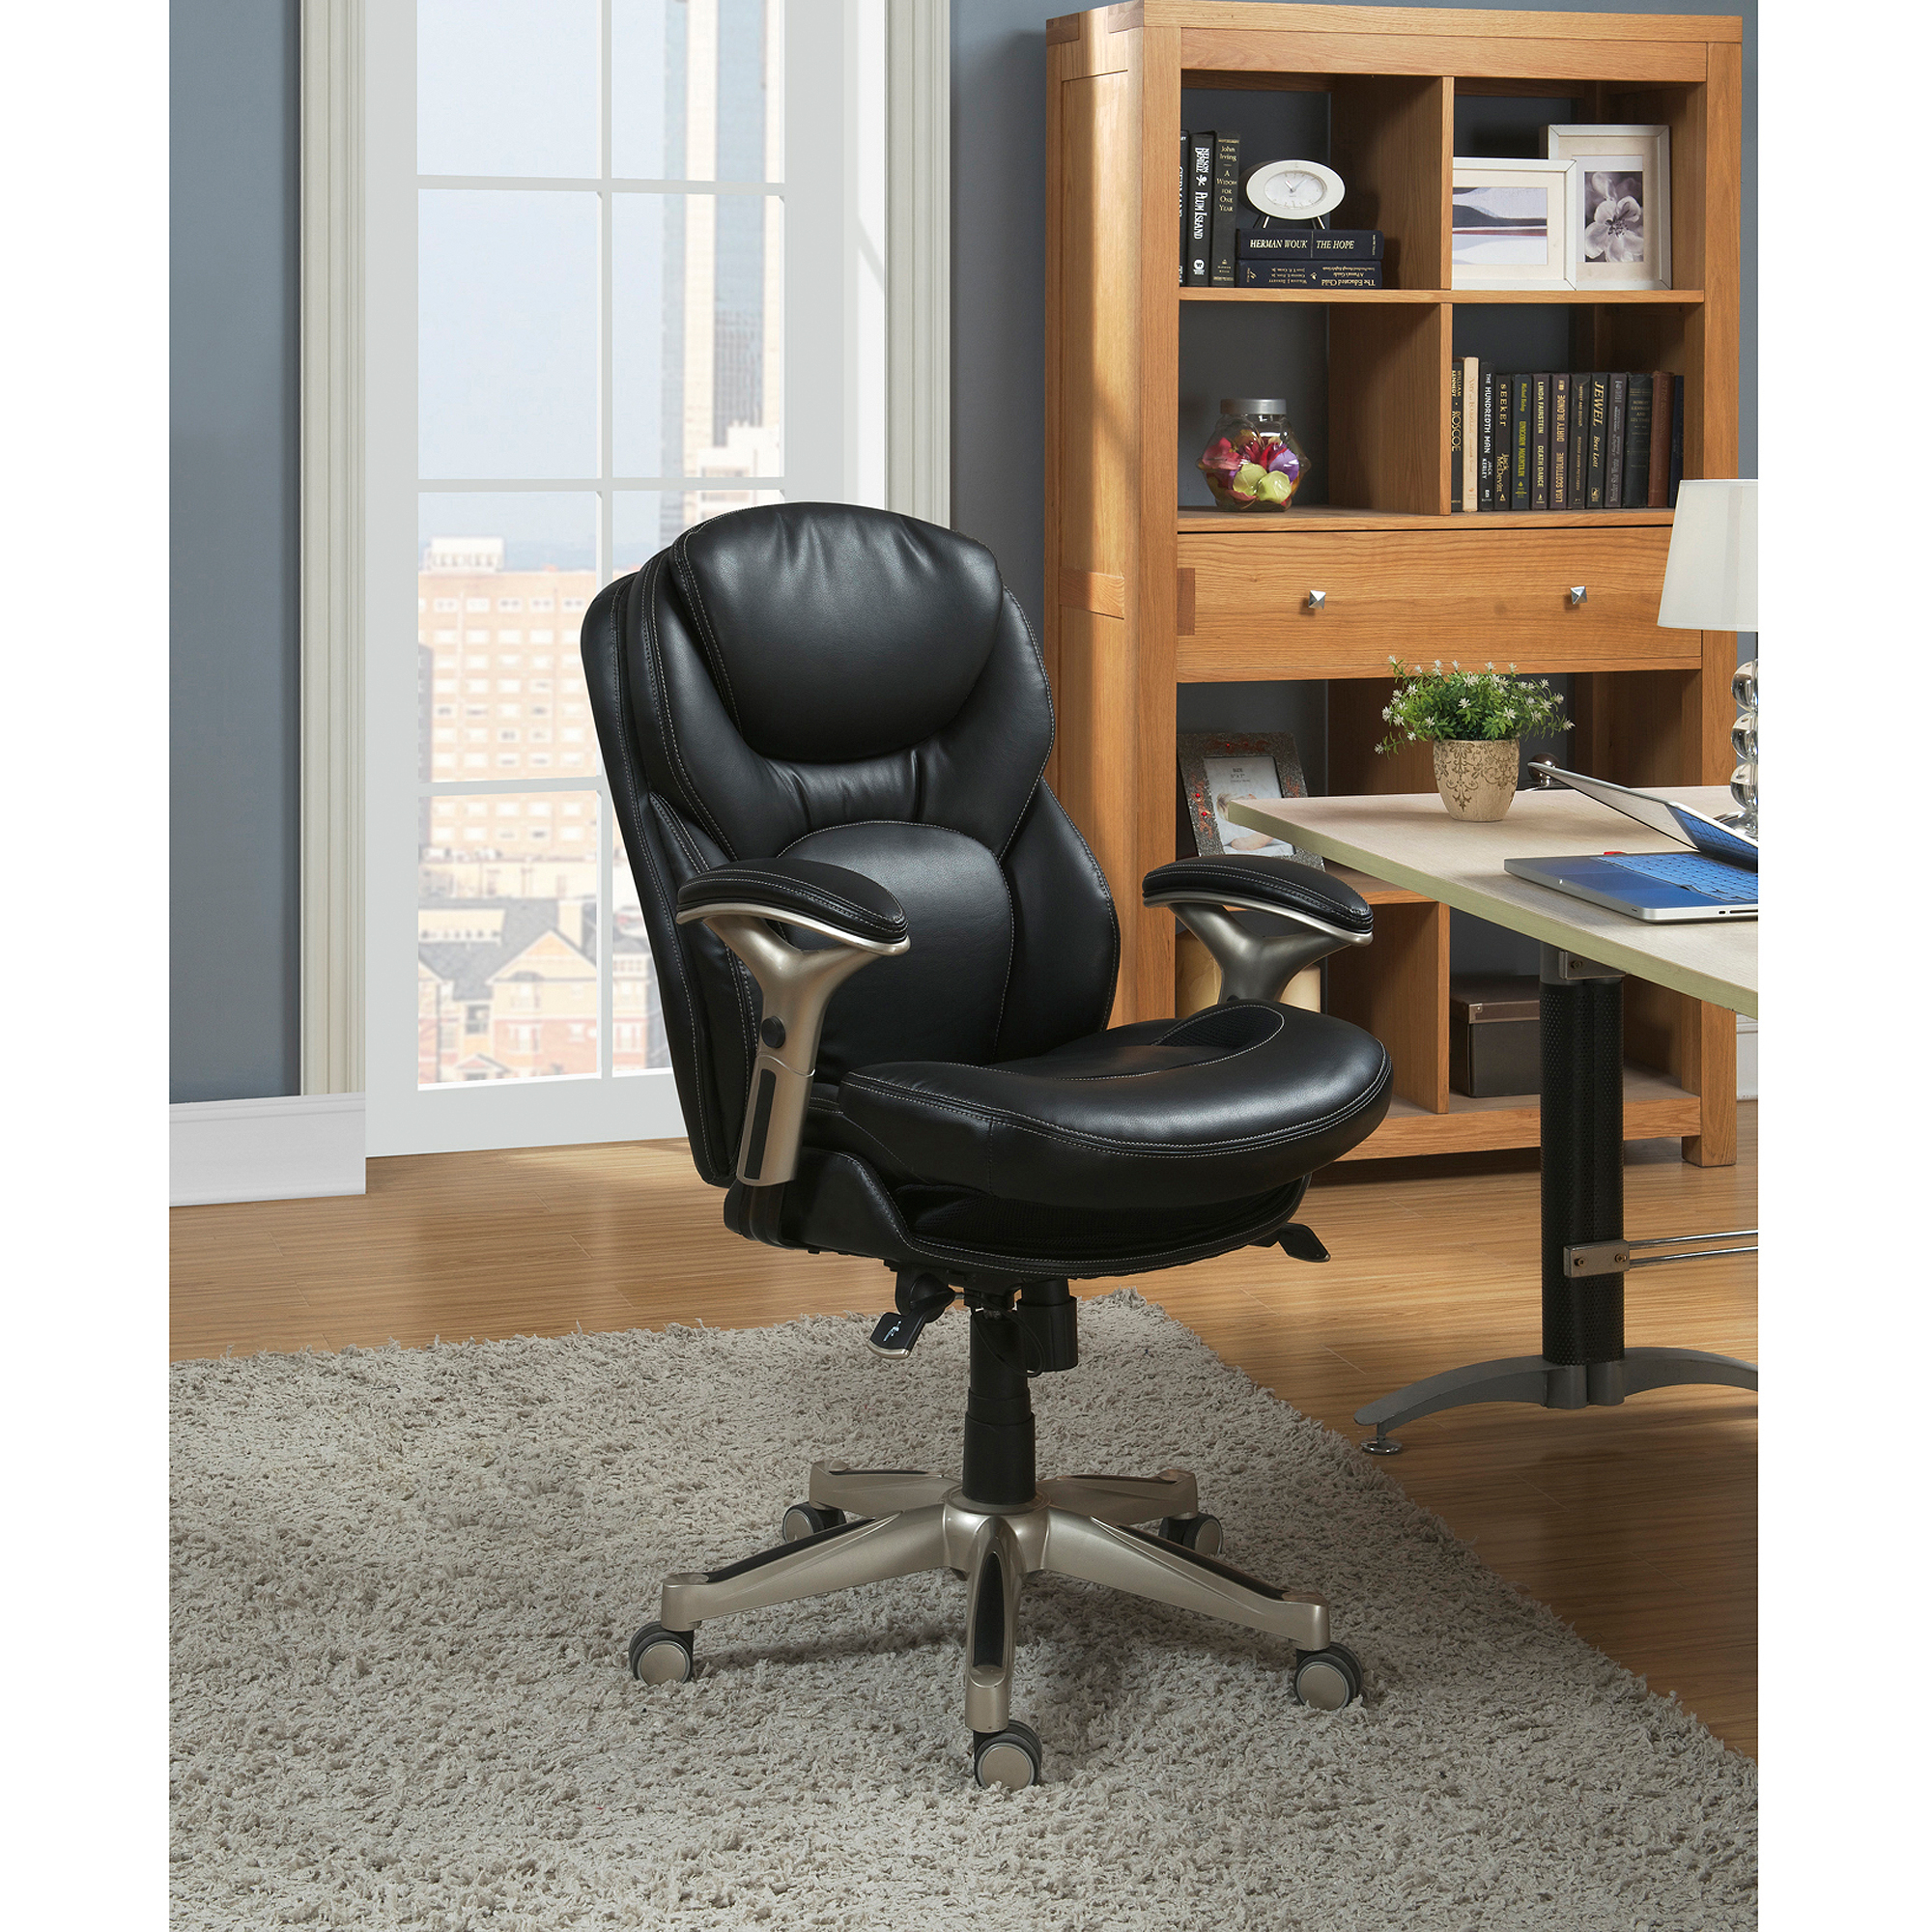 Serta Back In Motion Health And Wellness Mid Back Bonded Leather Office  Chair, Smooth Black   Walmart.com